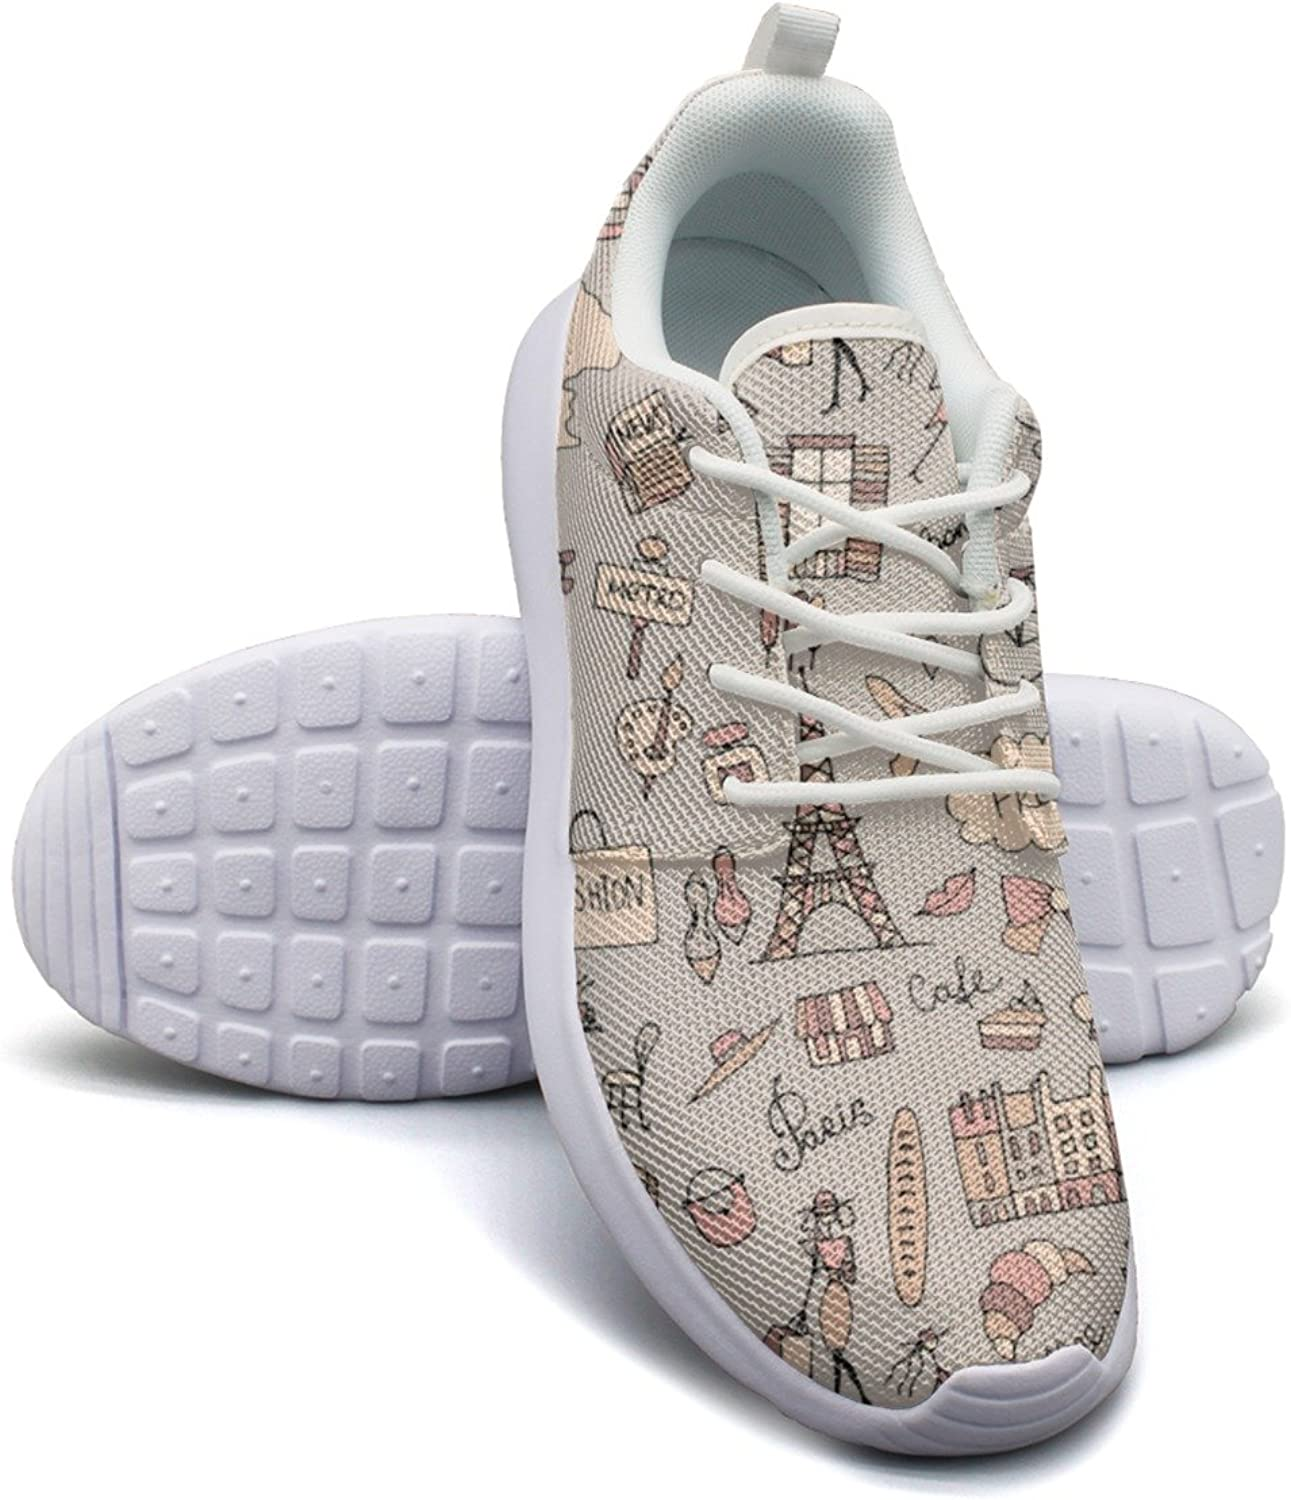 Fashion France with Eiffel Tower Women's Lightweight Mesh Sneakers Exclusive Running shoes